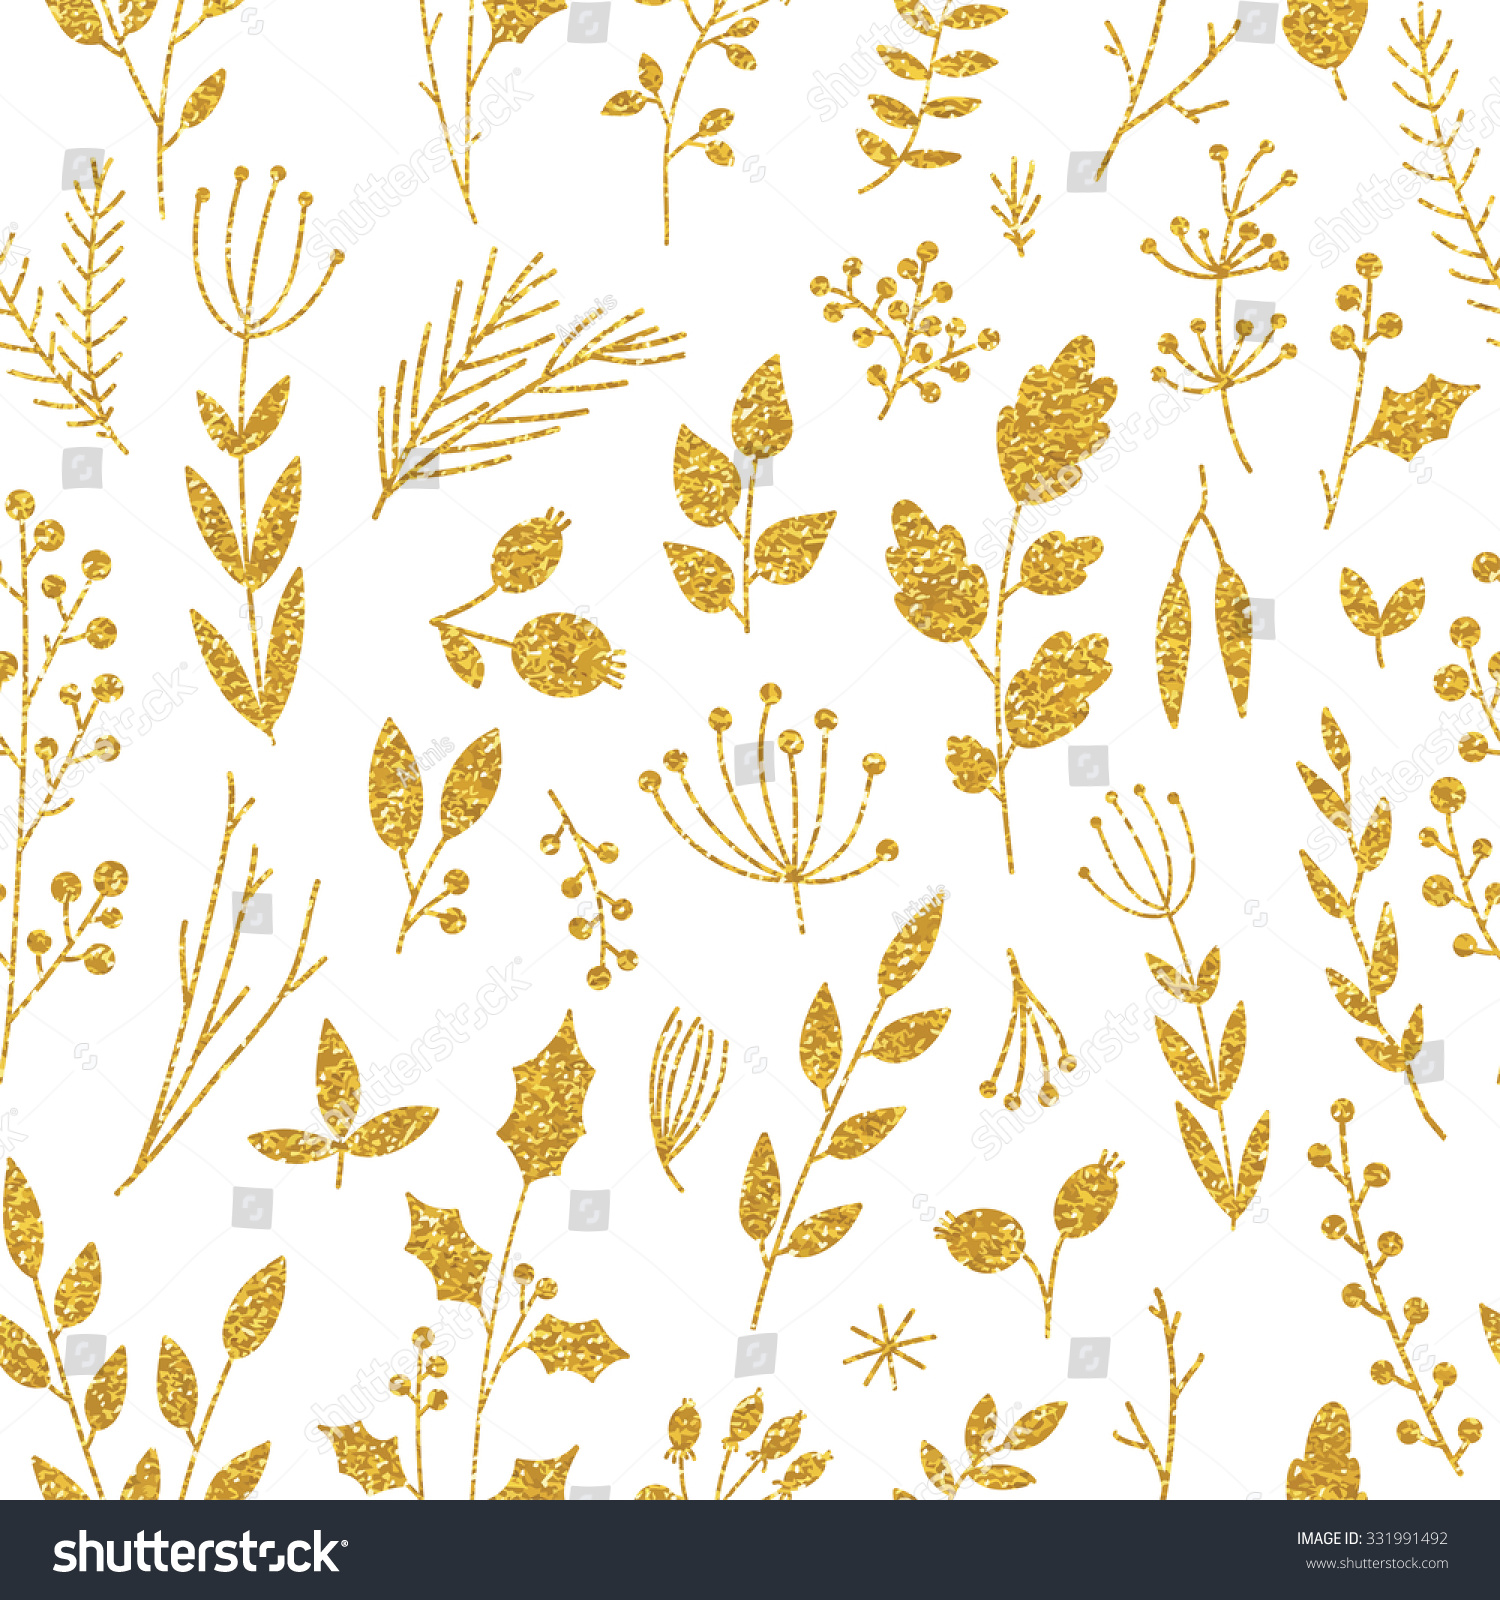 download textures gold floral - photo #25